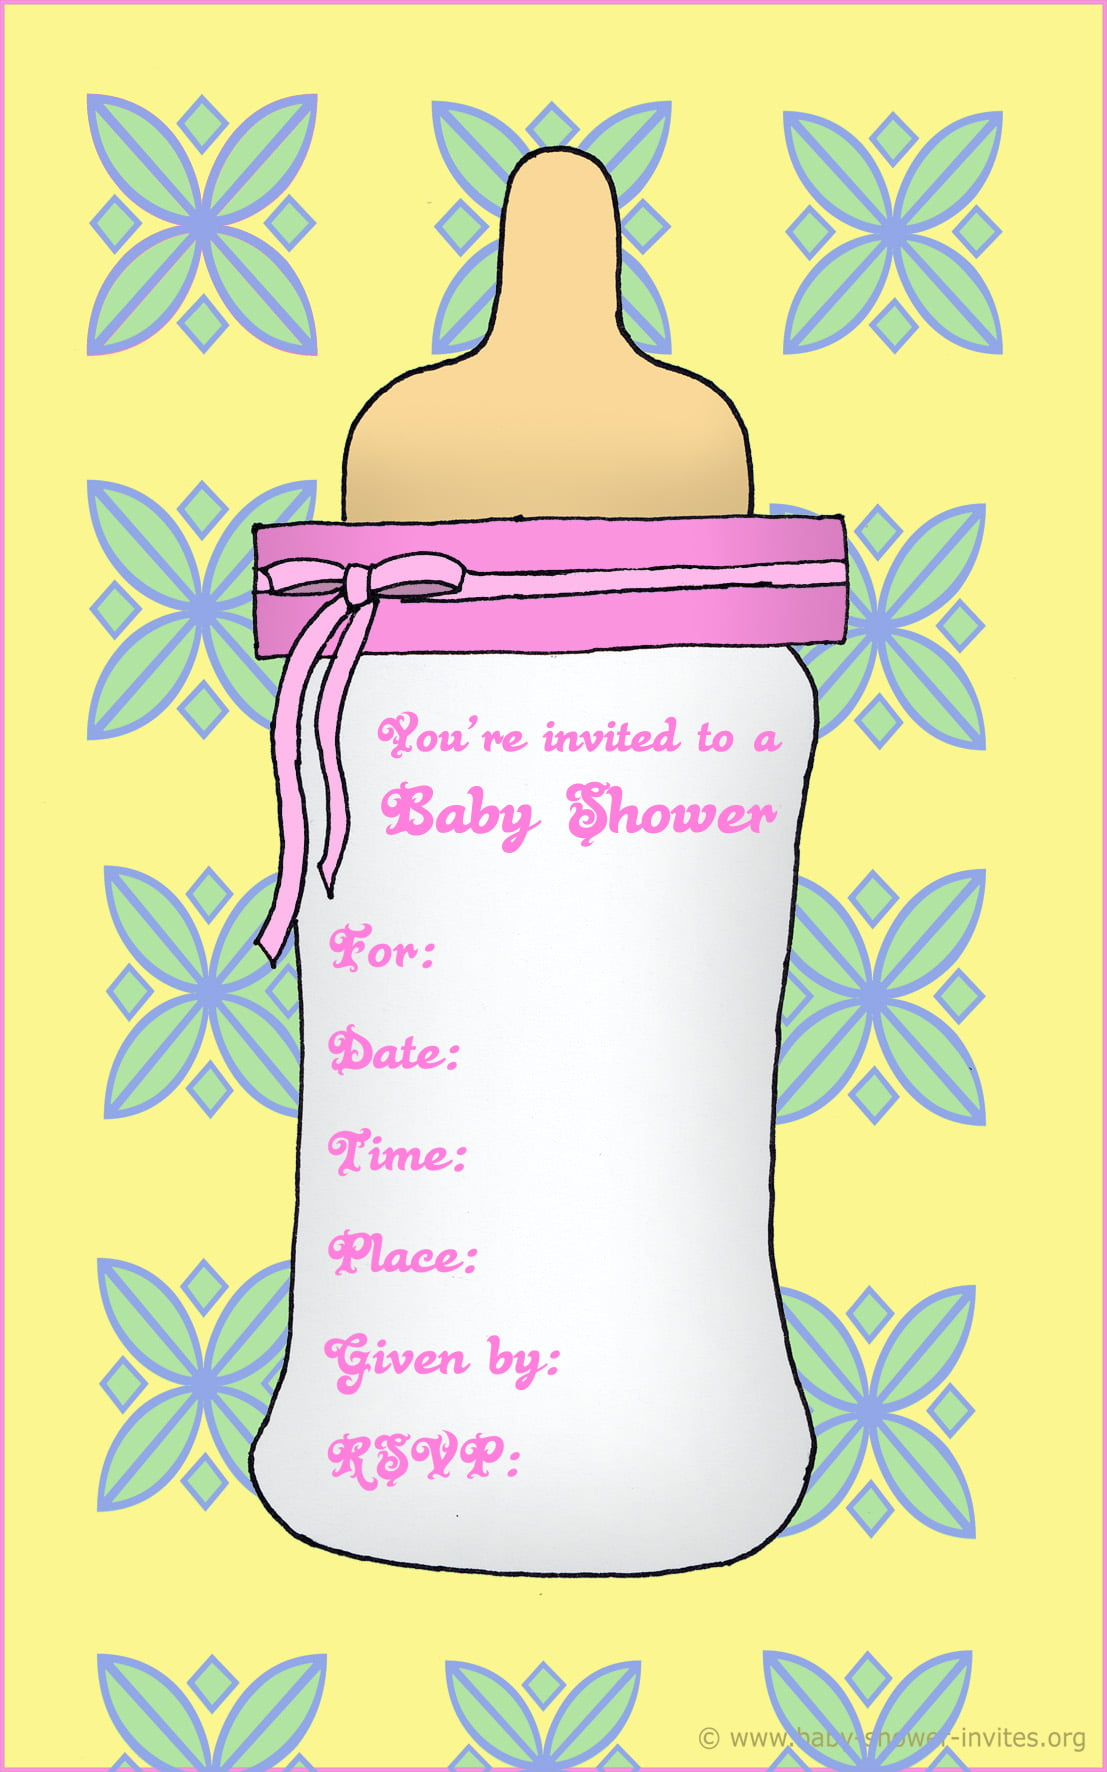 Free printable baby bottle baby shower invitation template for Free printable baby shower invitations templates